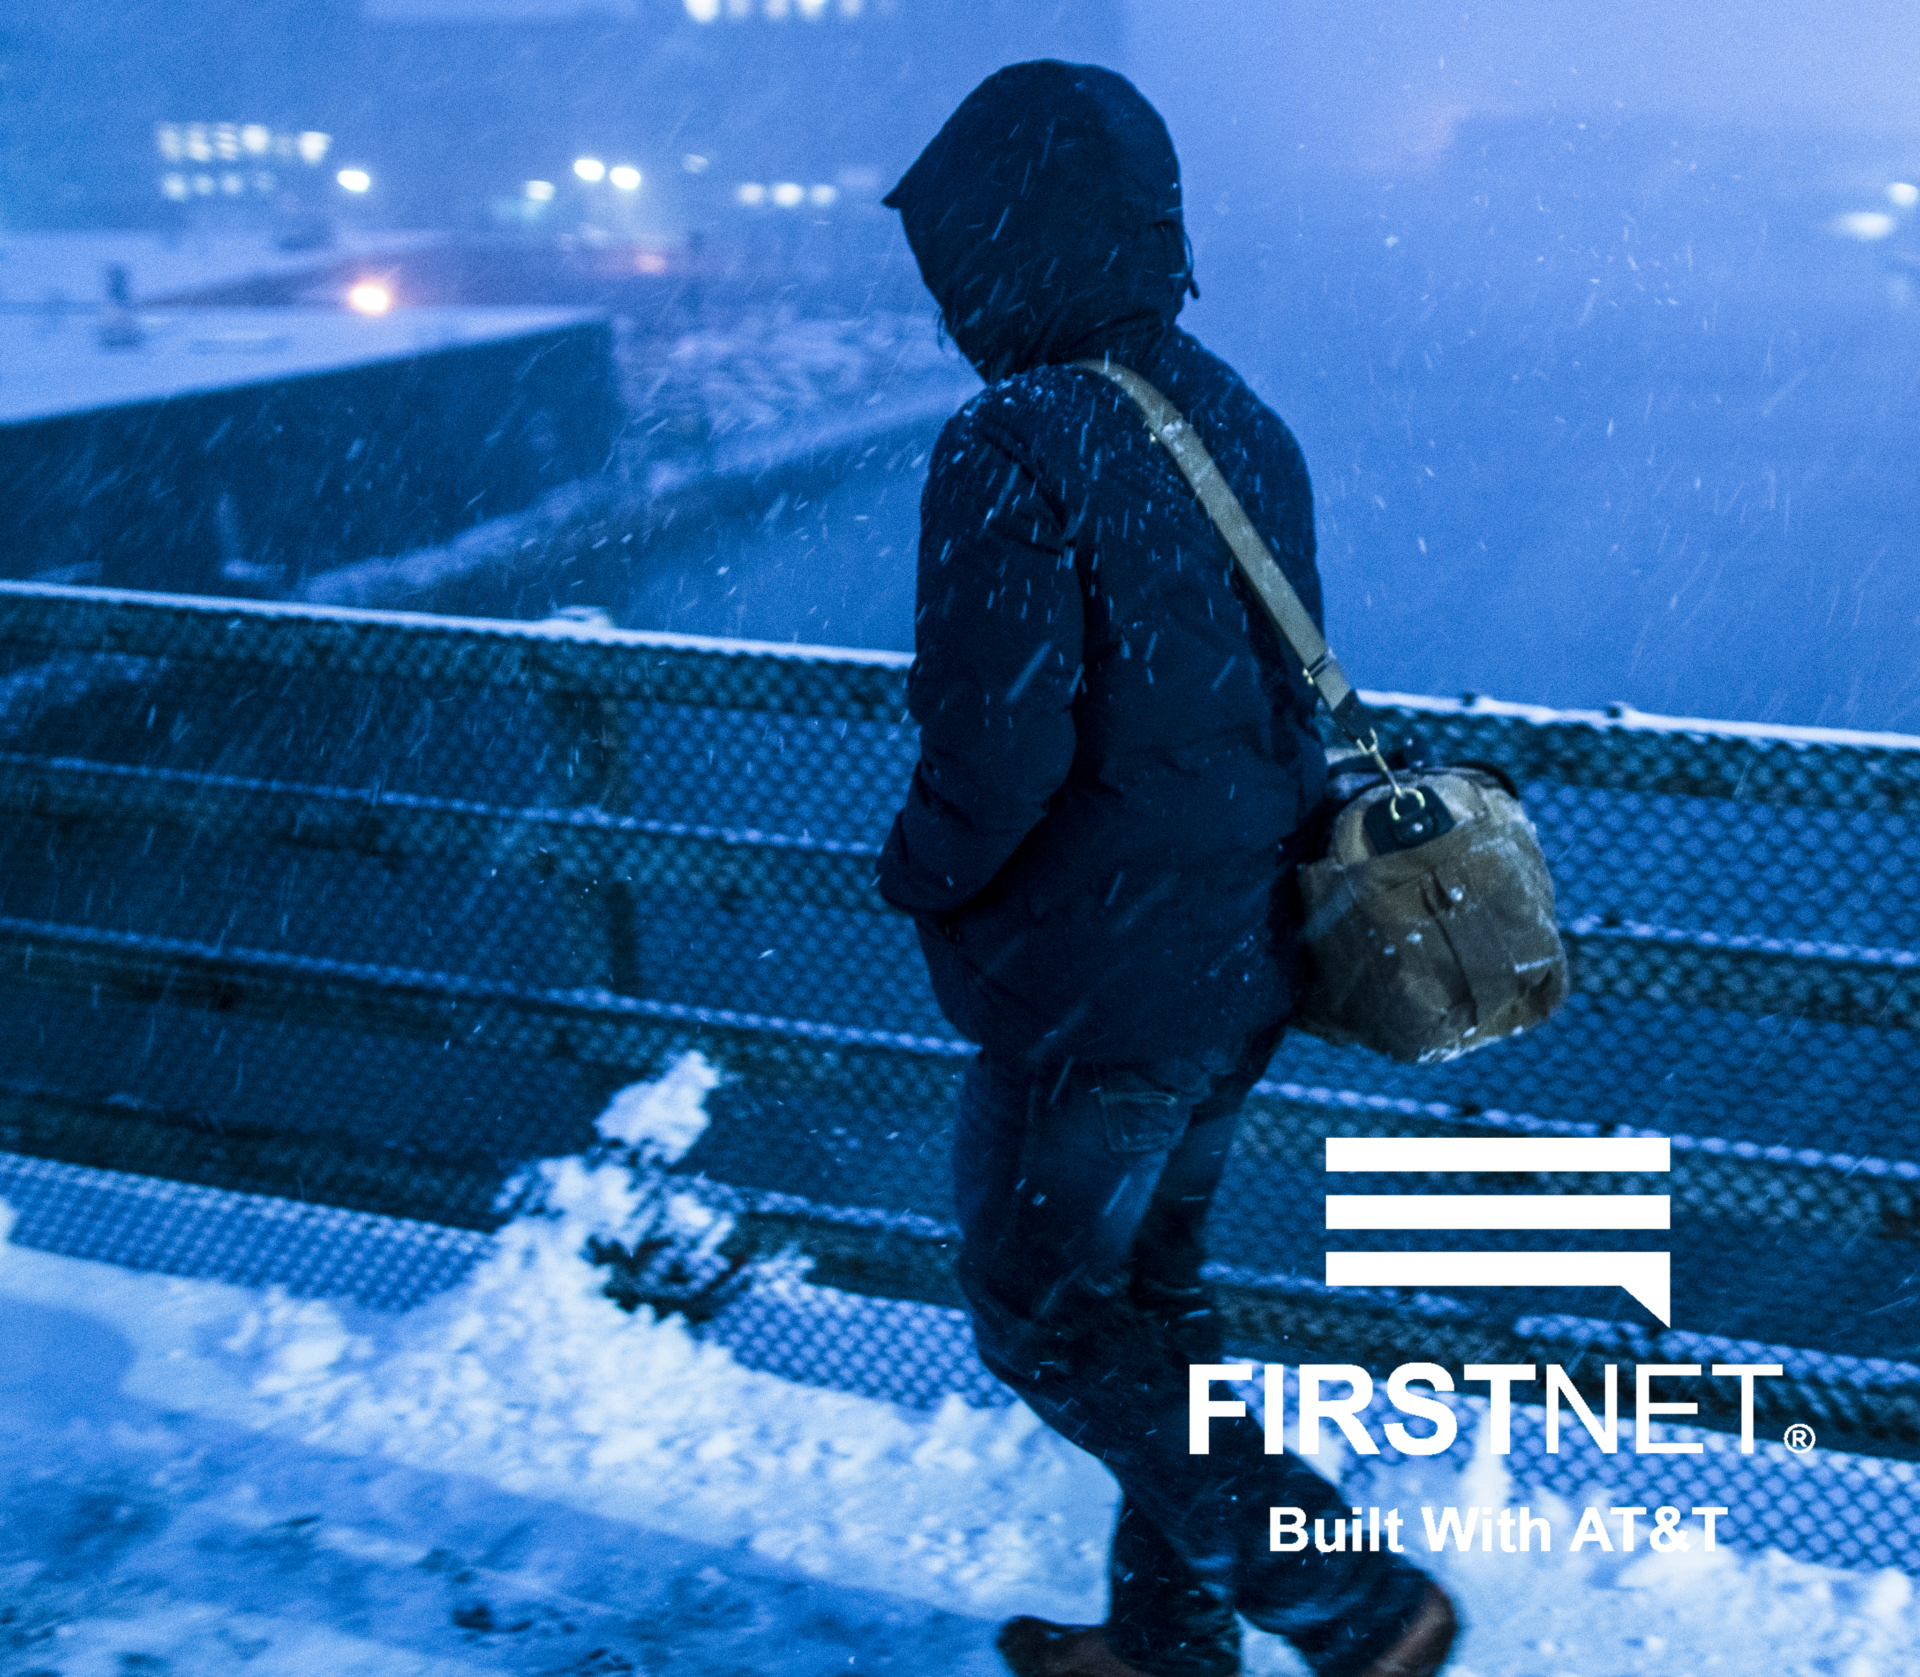 Kings III Expands Emergency Monitoring Benefit via FirstNet Network What To Know